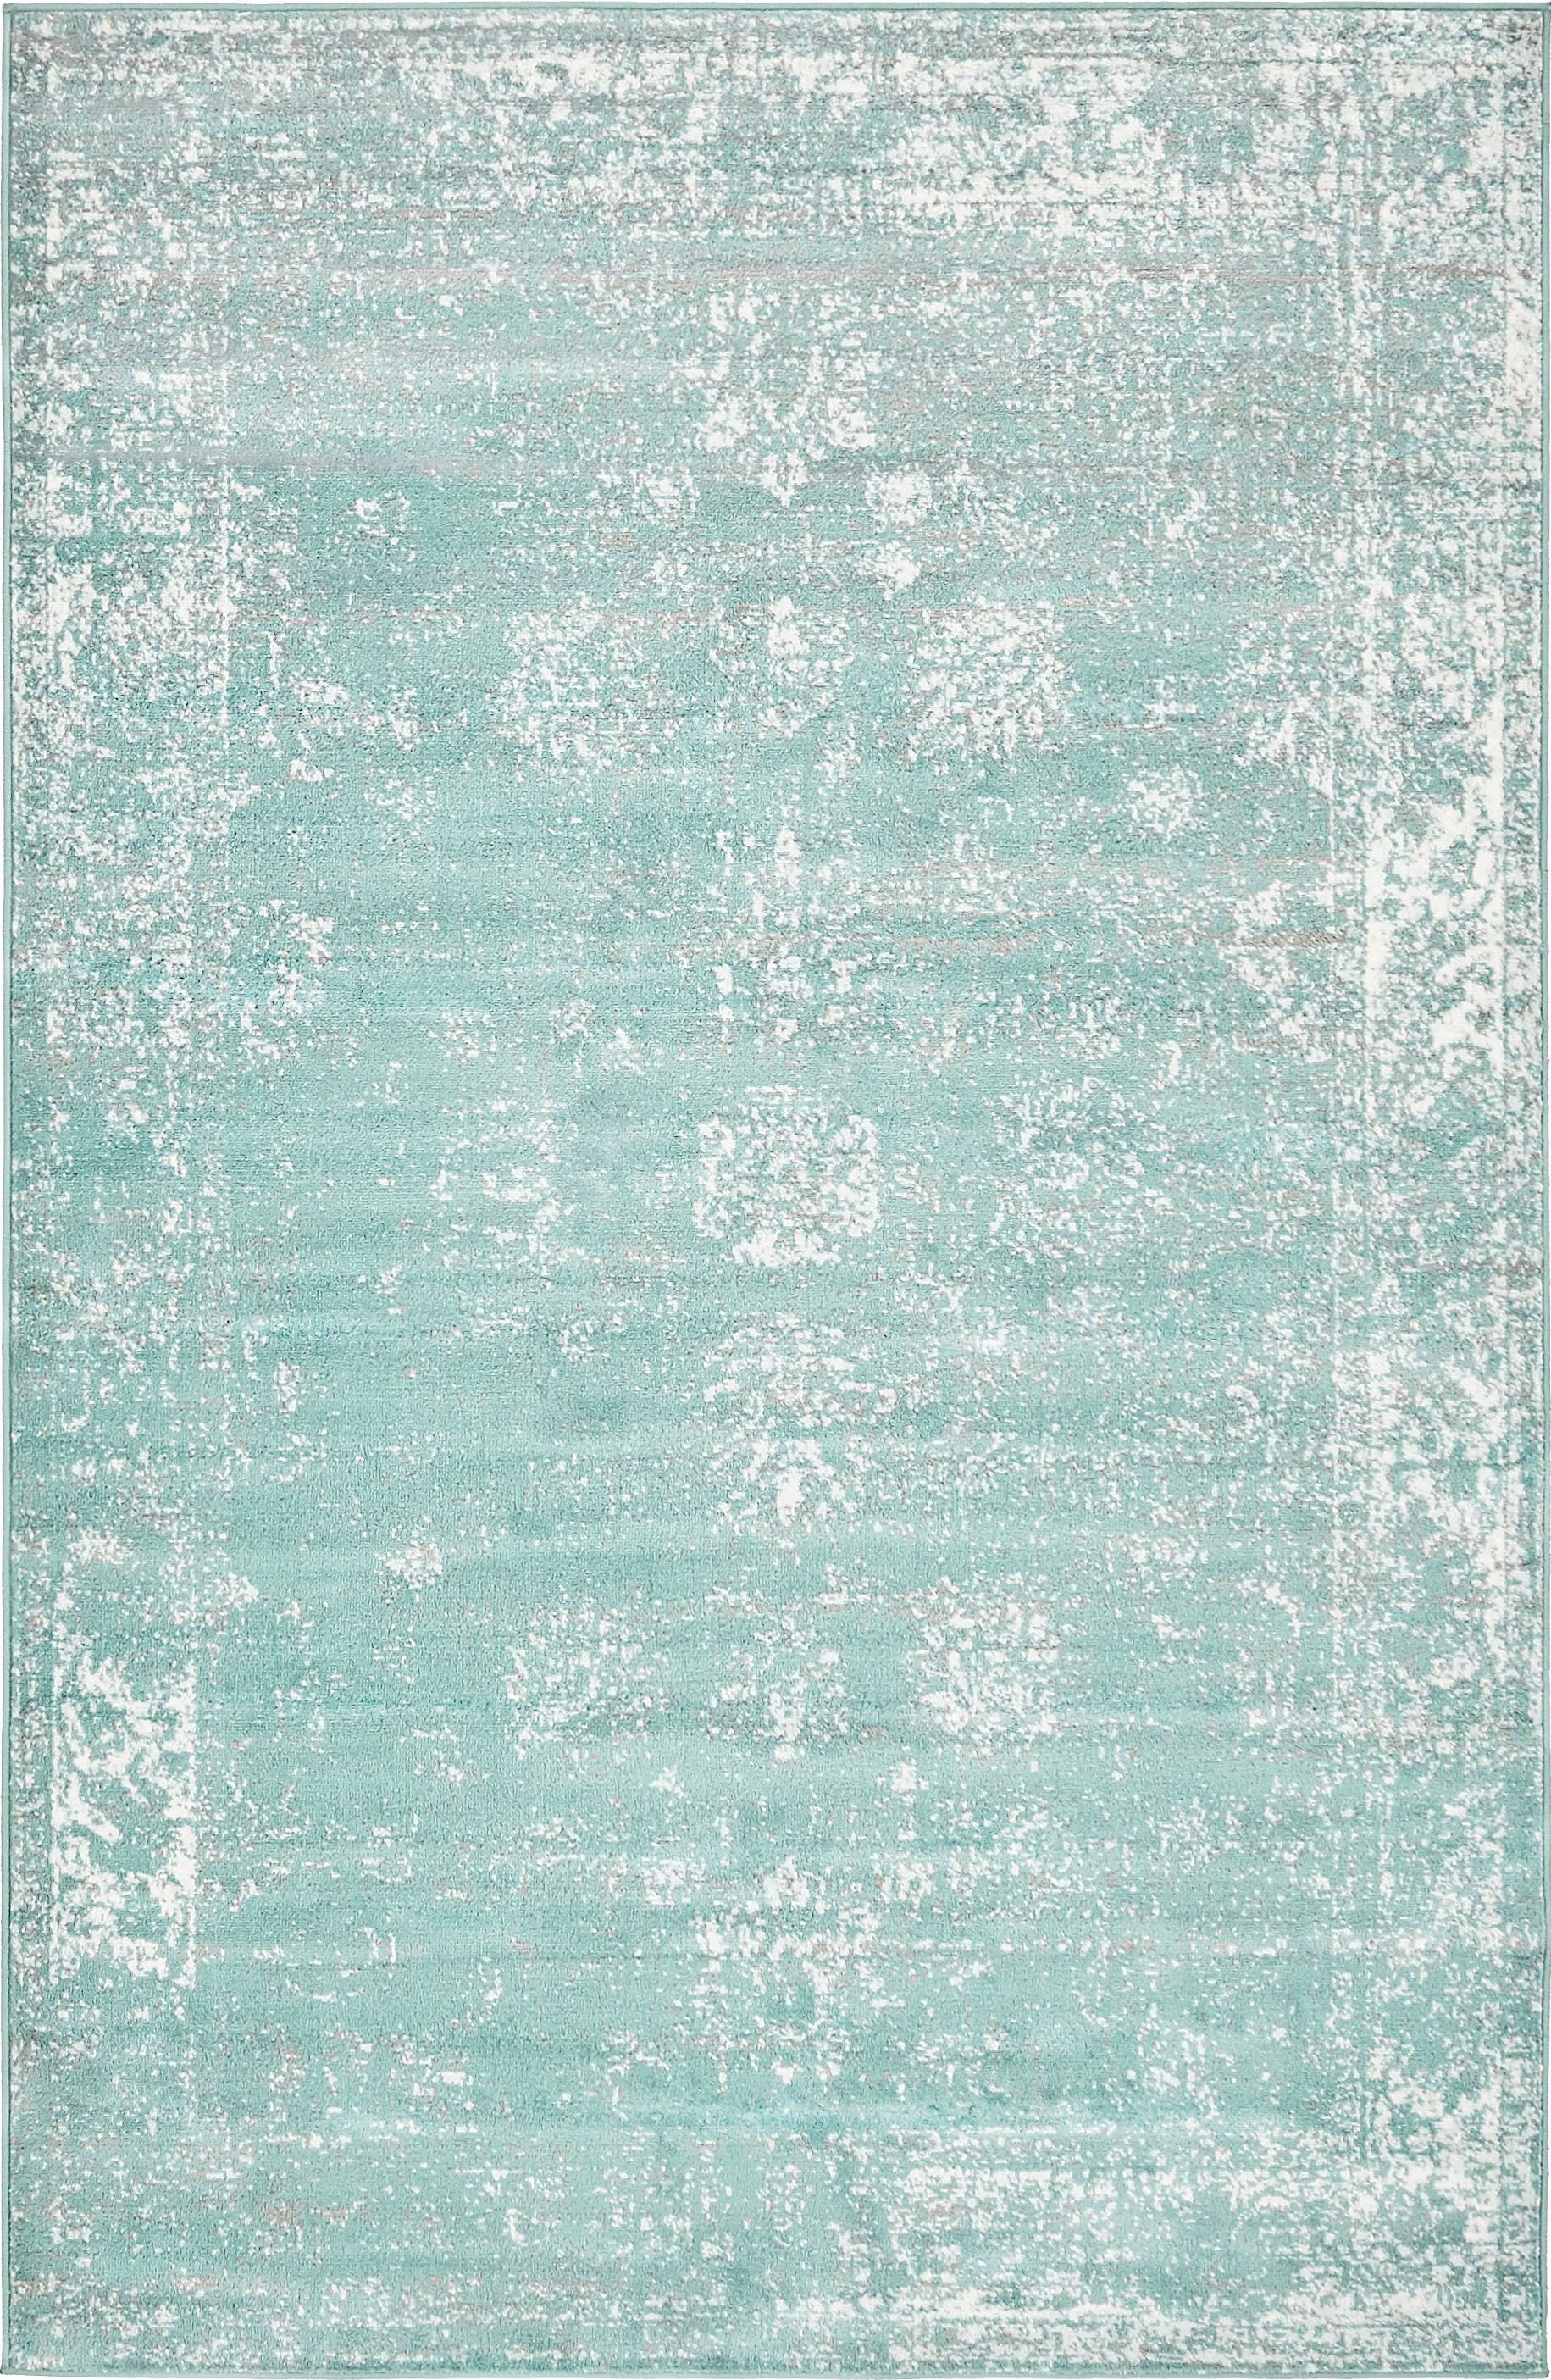 area room cheap full striped light green brown tan red white outdoor living rug of and sale size rugs turquoise teal fluffy for